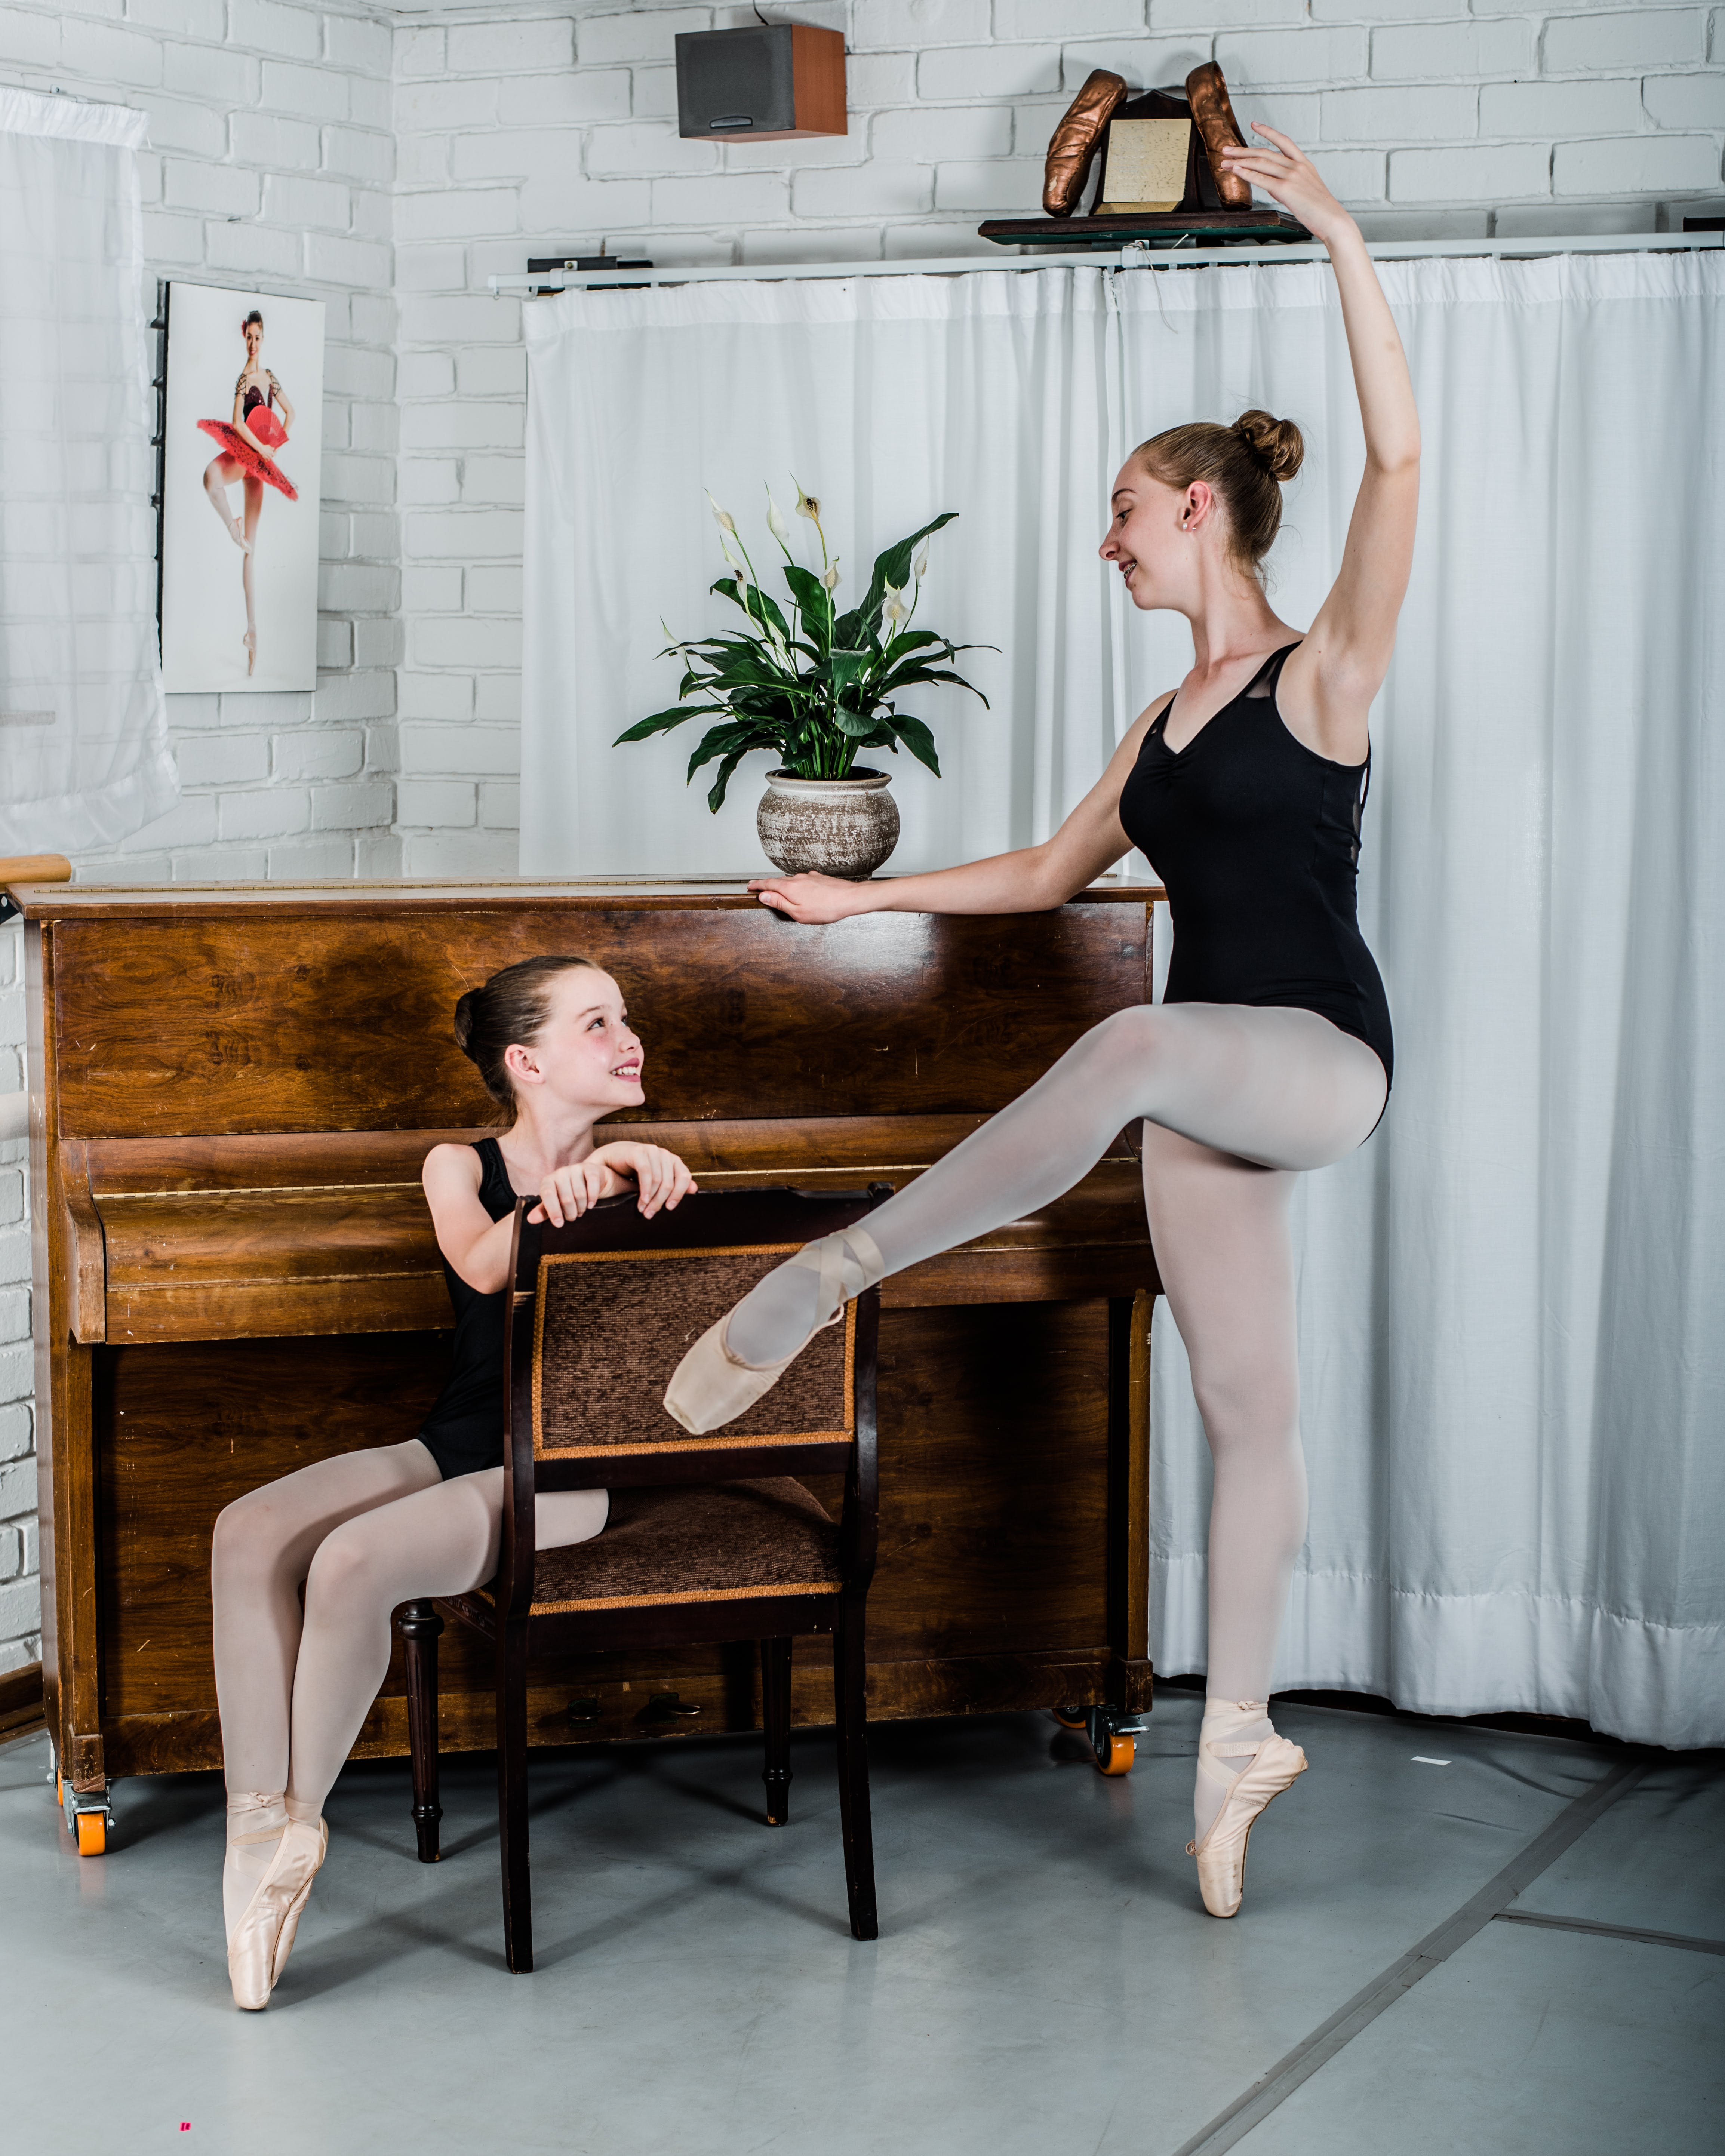 Woman Dancing Ballet in Front of Girl Sitting on Chair